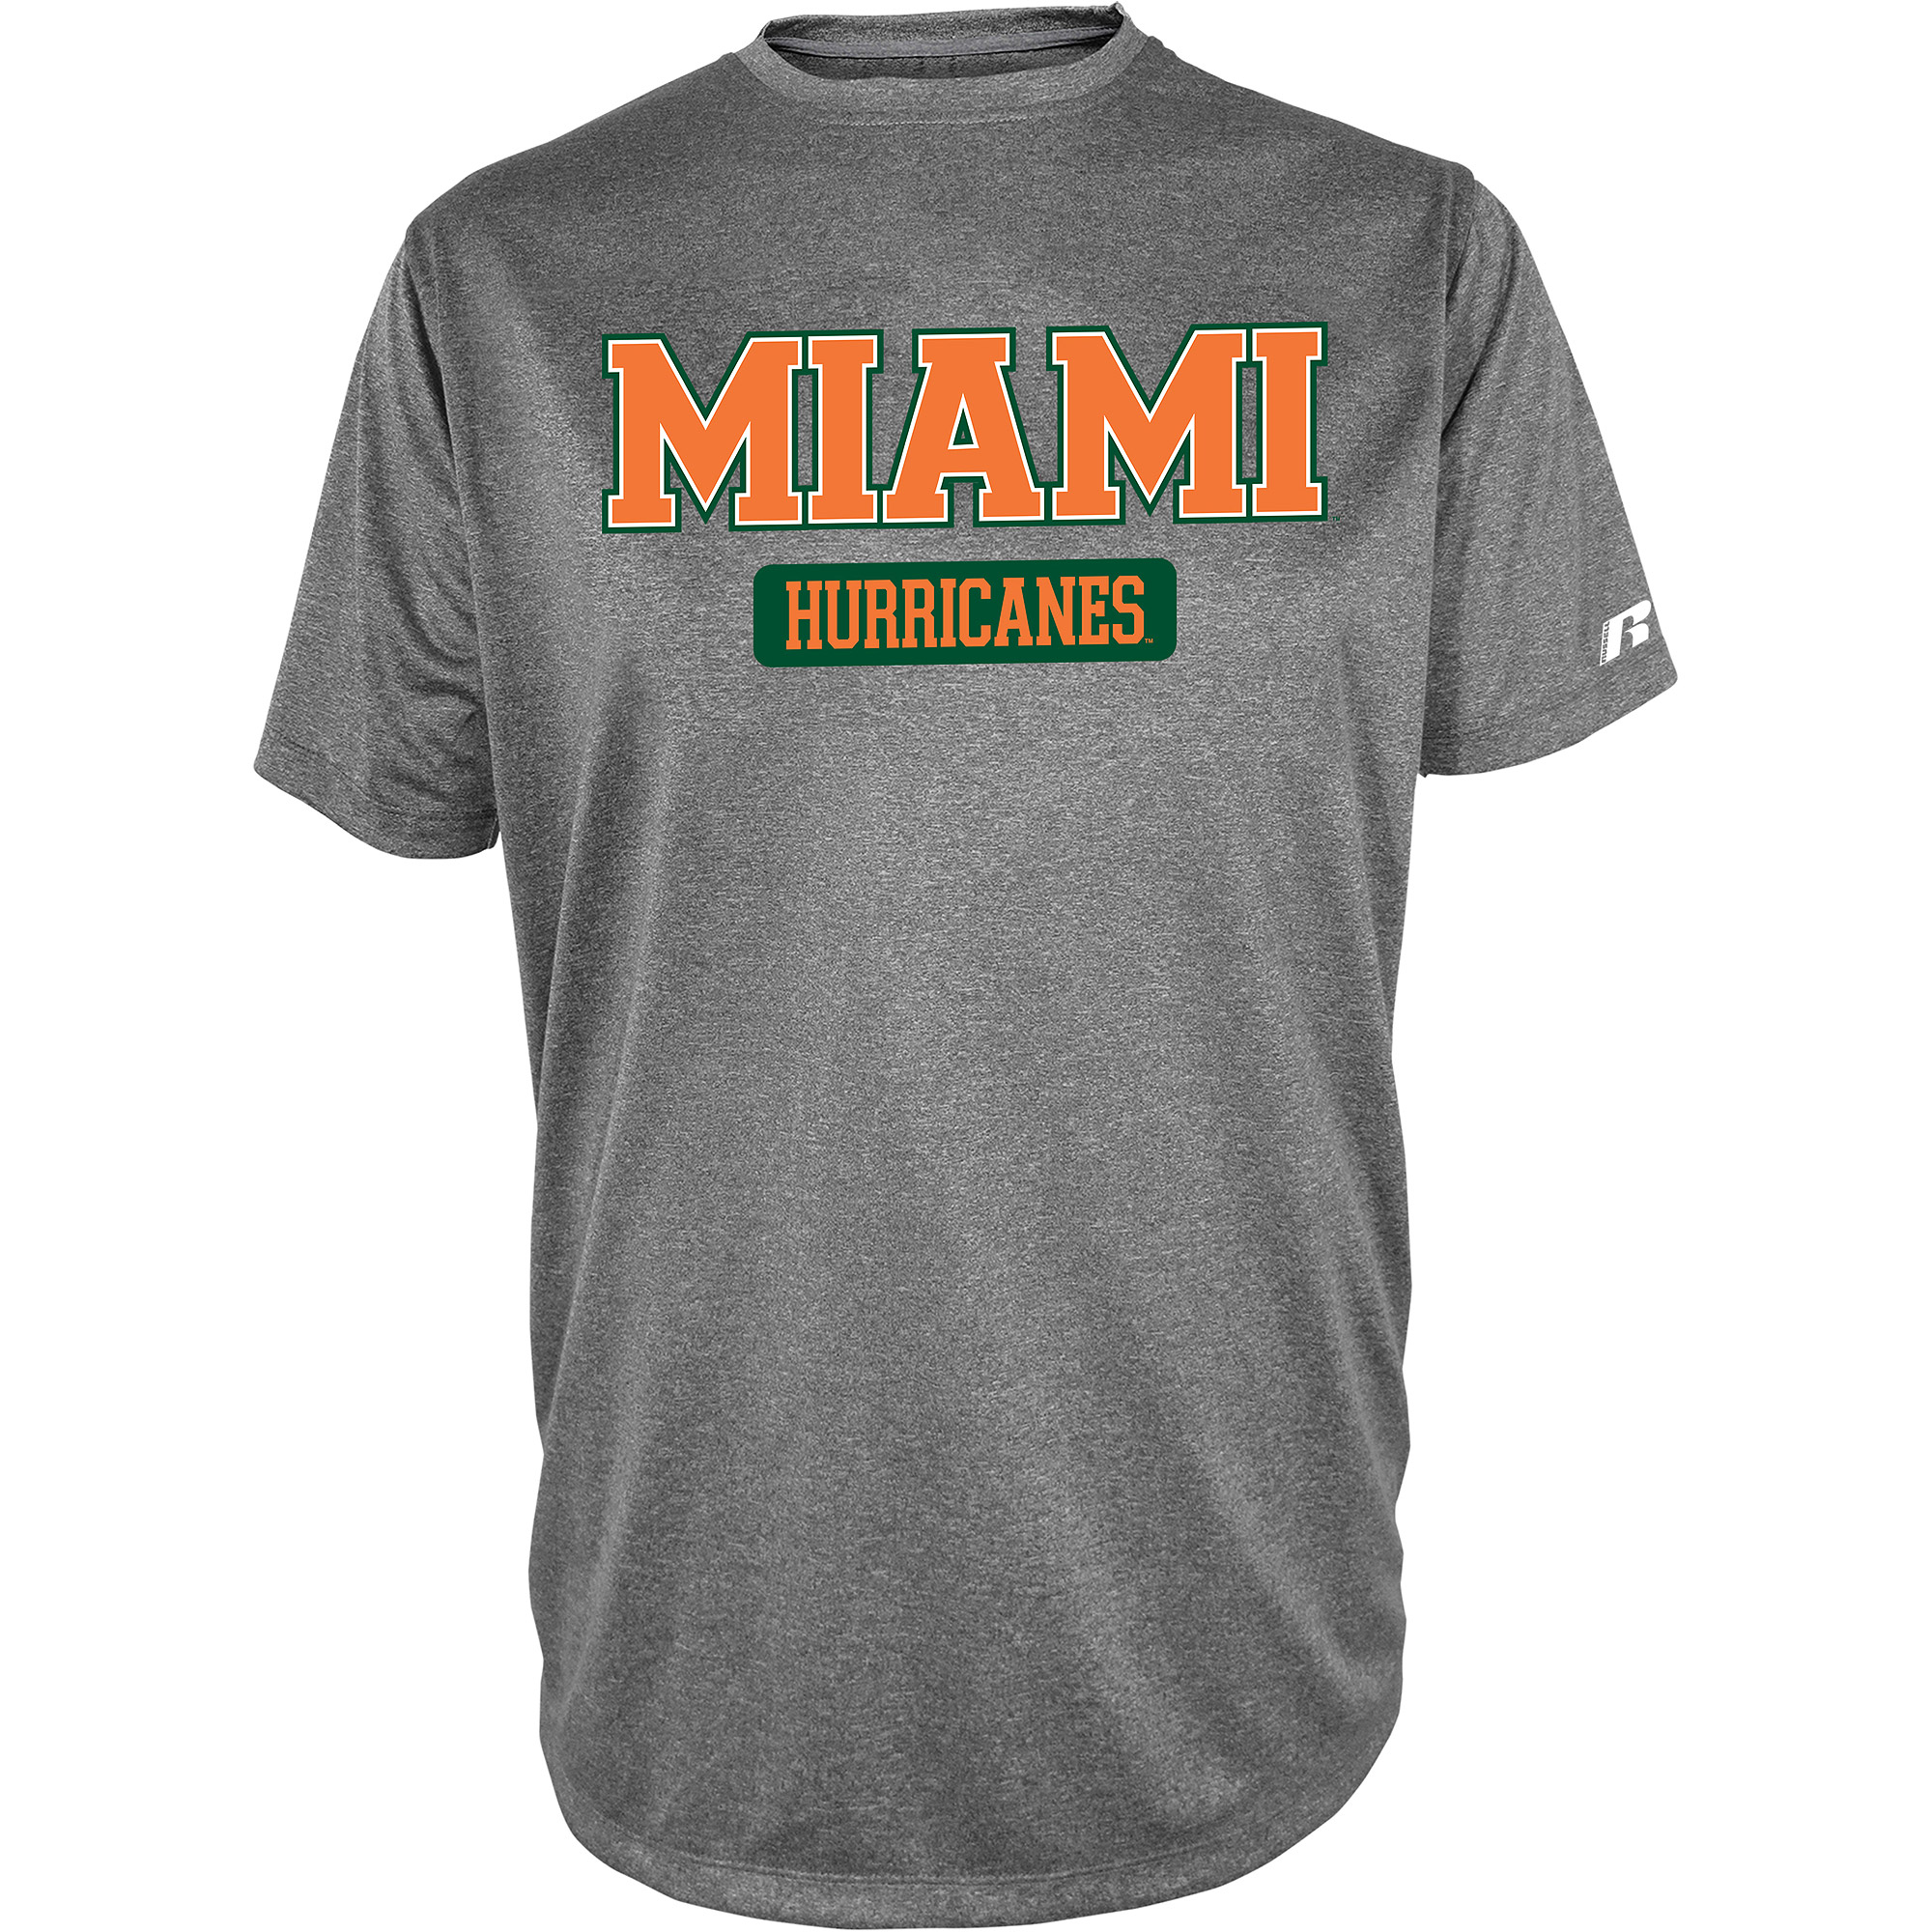 Russell NCAA  Miami Hurricanes, Men's Impact T-Shirt